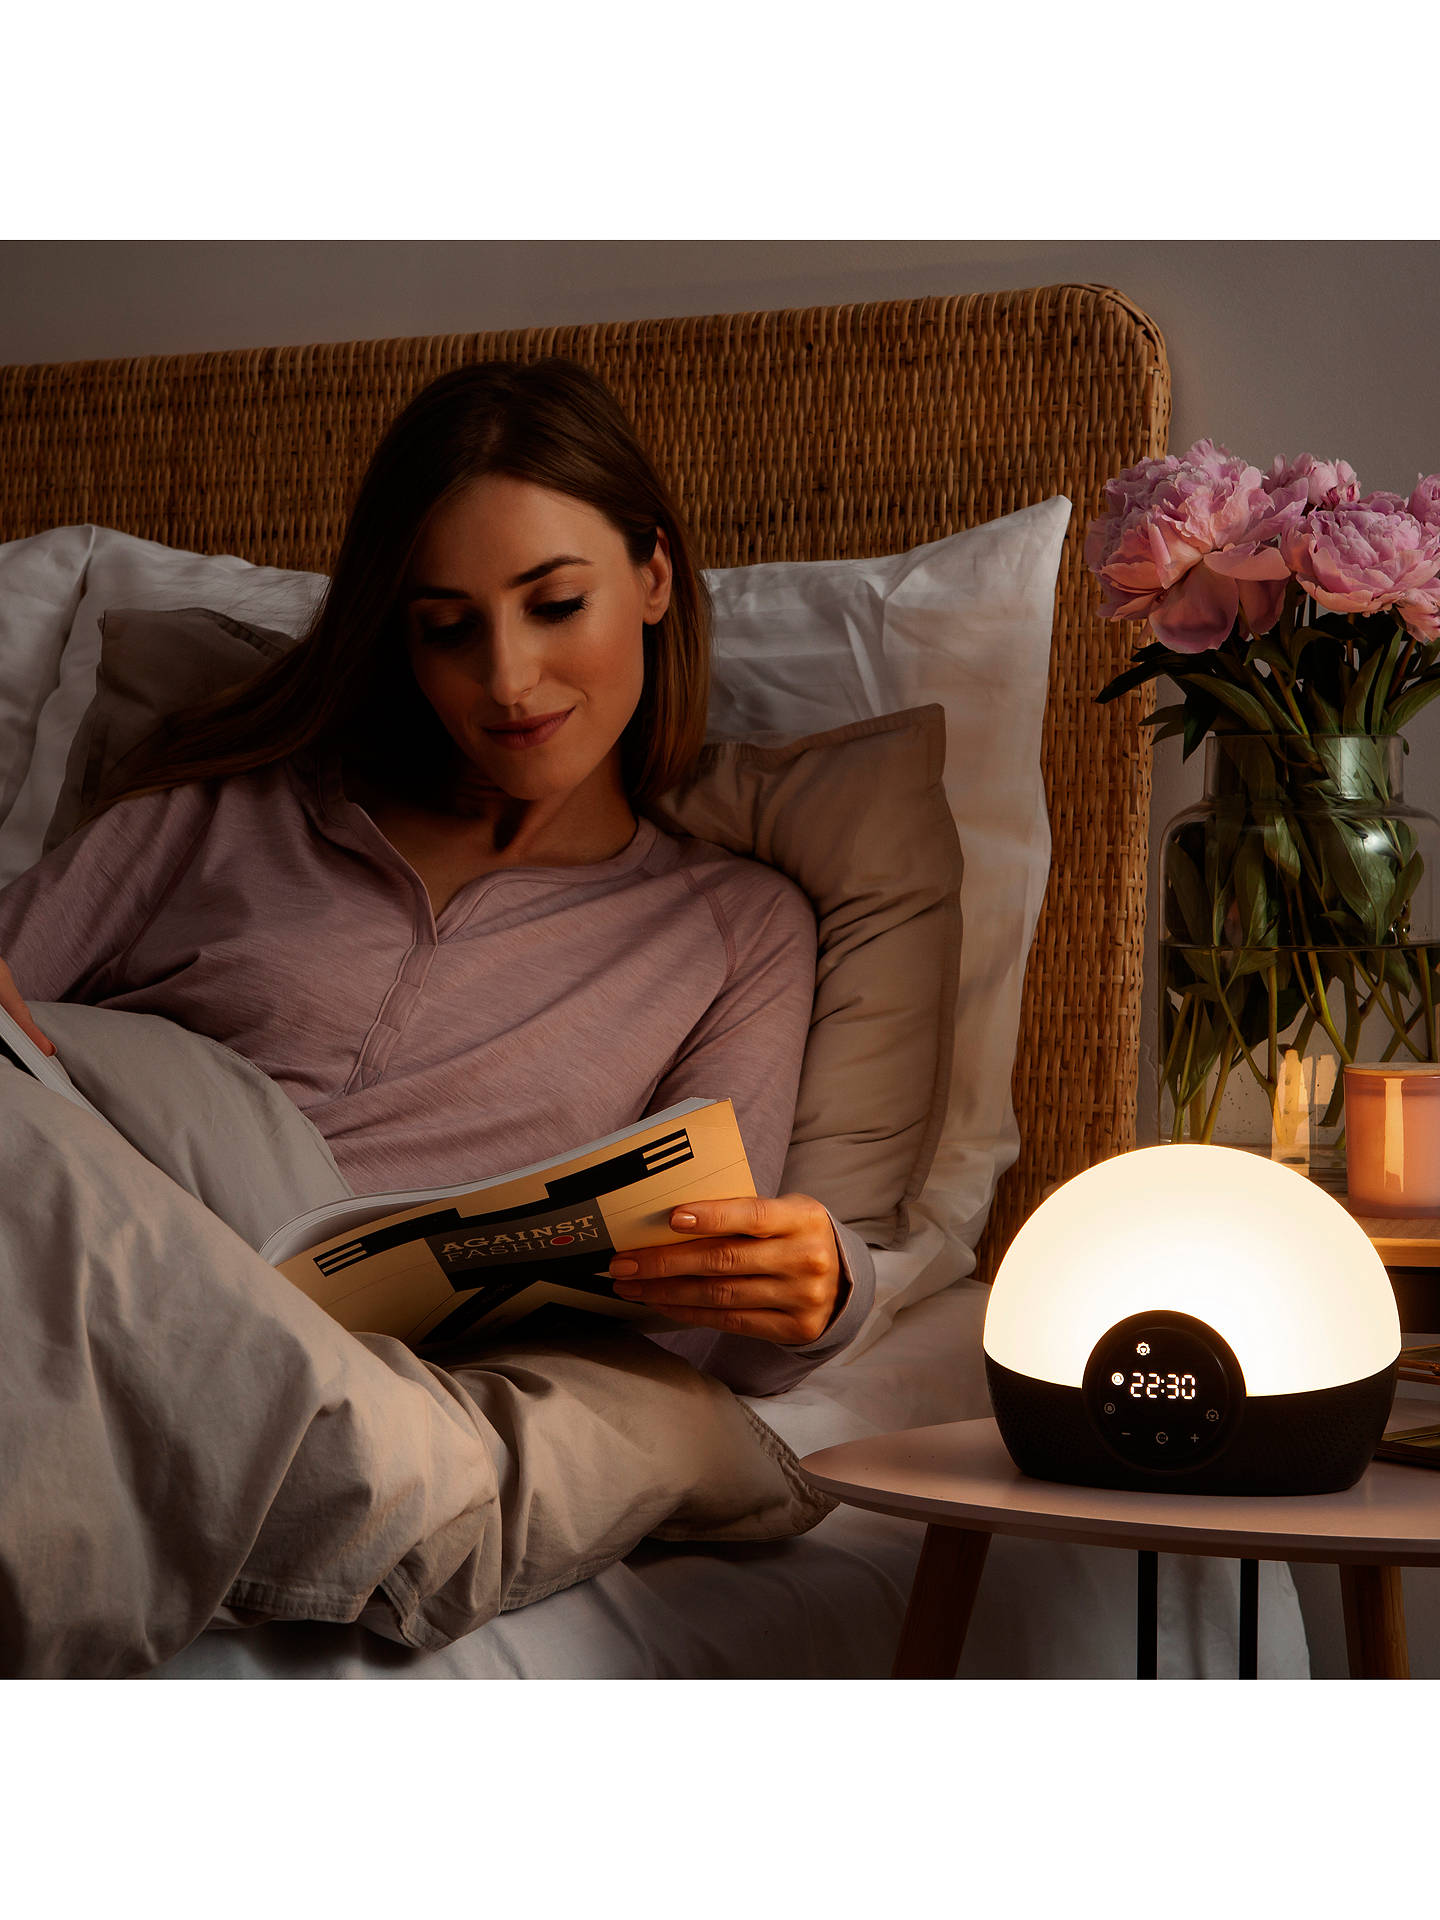 Buy Lumie Bodyclock Glow 150 Wake up to Daylight SAD Light Online at johnlewis.com